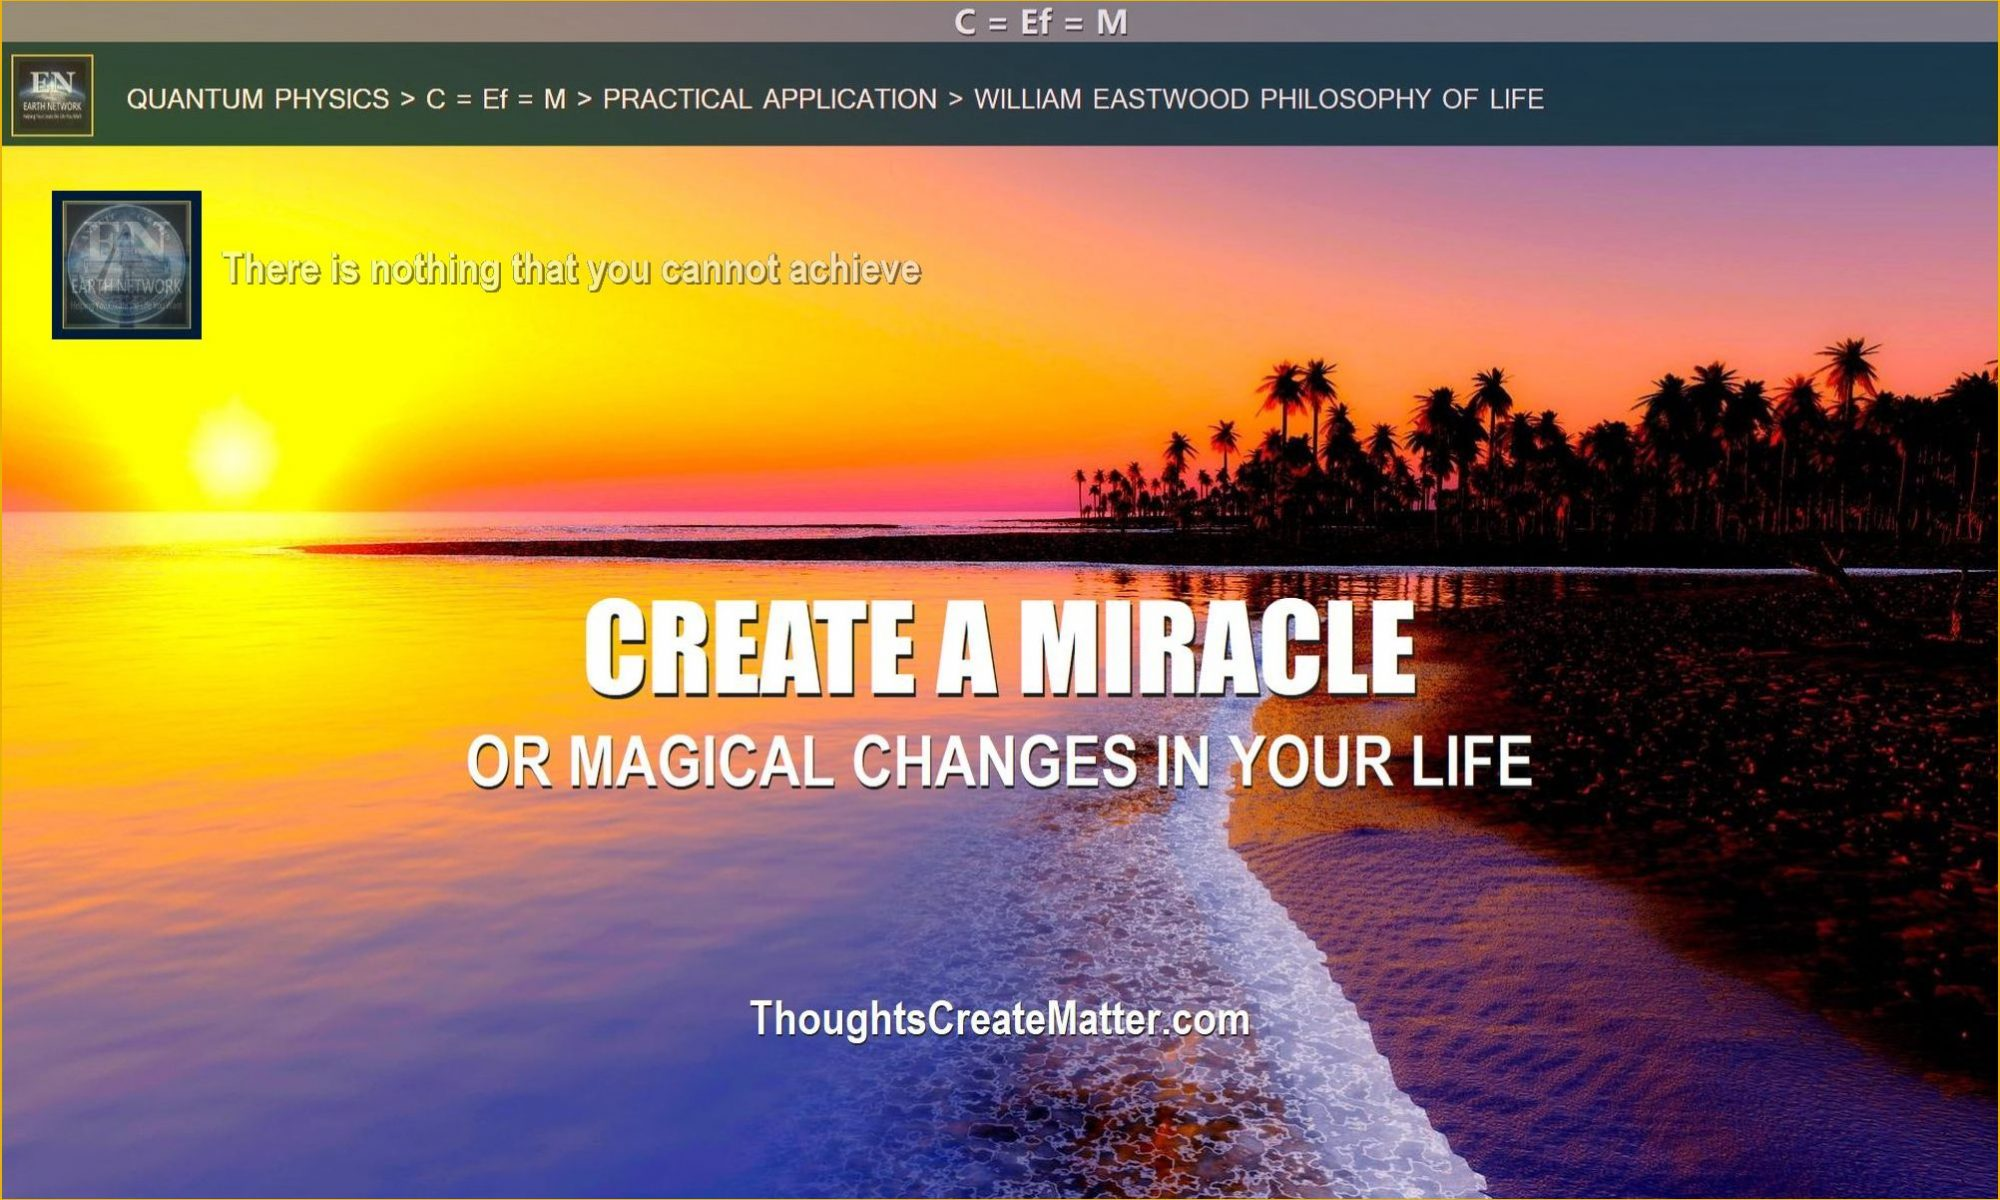 Paradise-depicts-miracle-and-how-to-use-my-mind-thoughts-to-create-miracles-change-magic-metaphysics